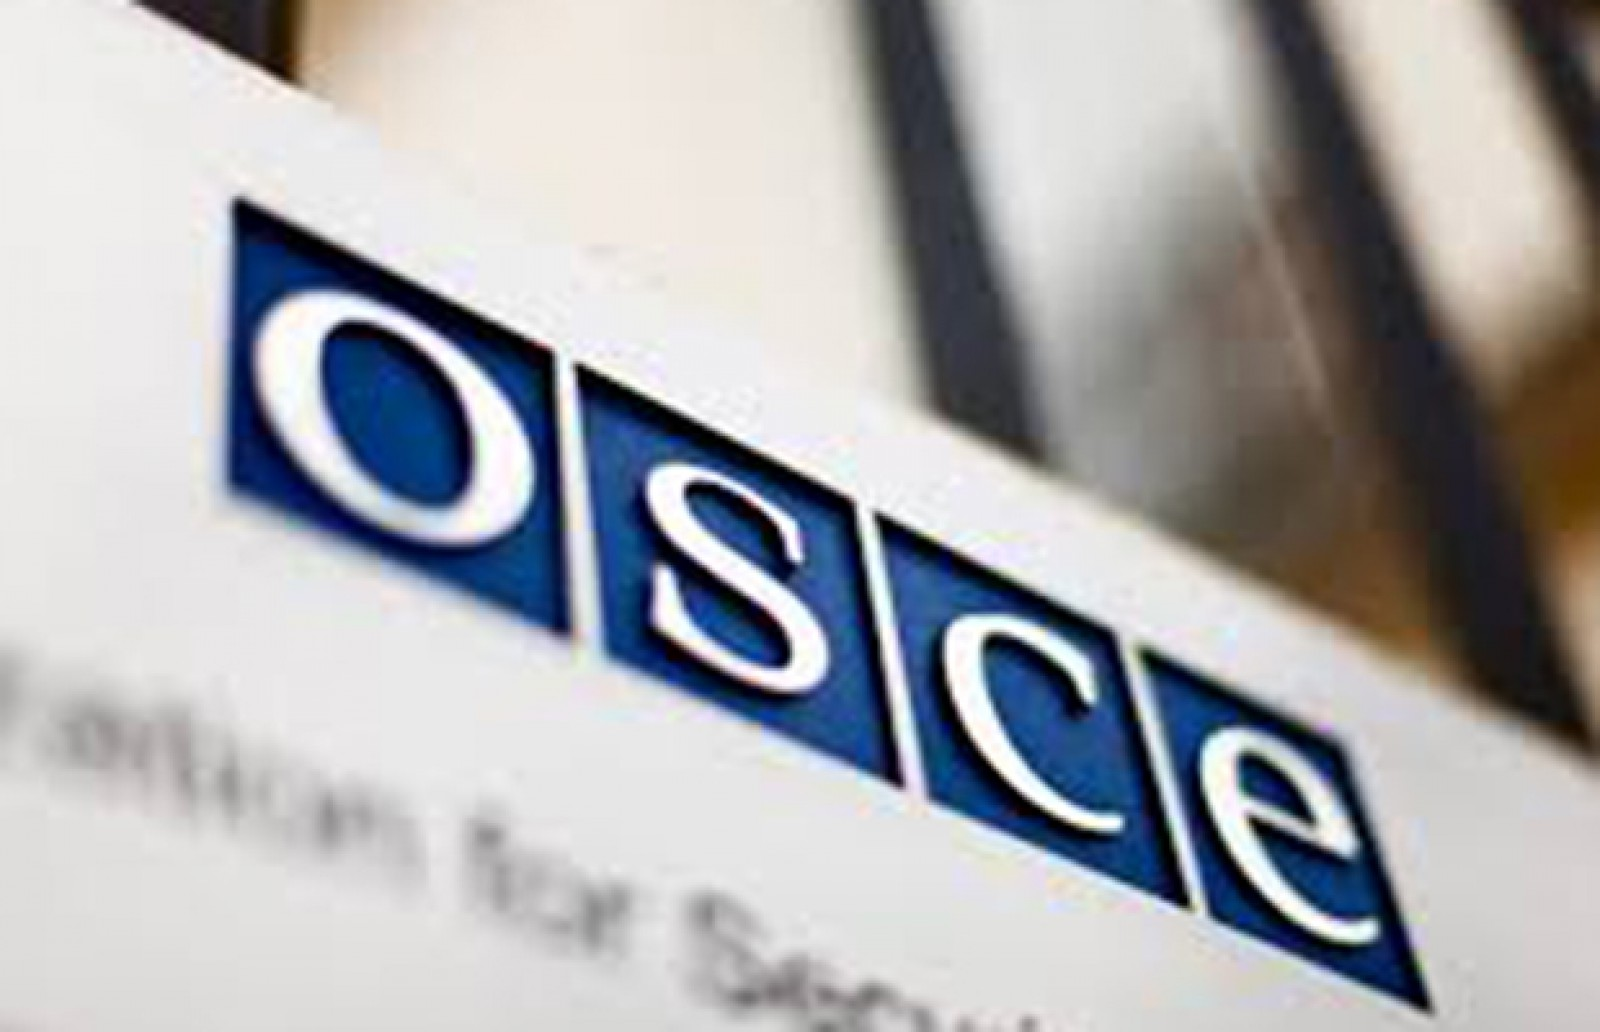 OSCE criticizes the PM and AKEP following threats to shut down several media outlets